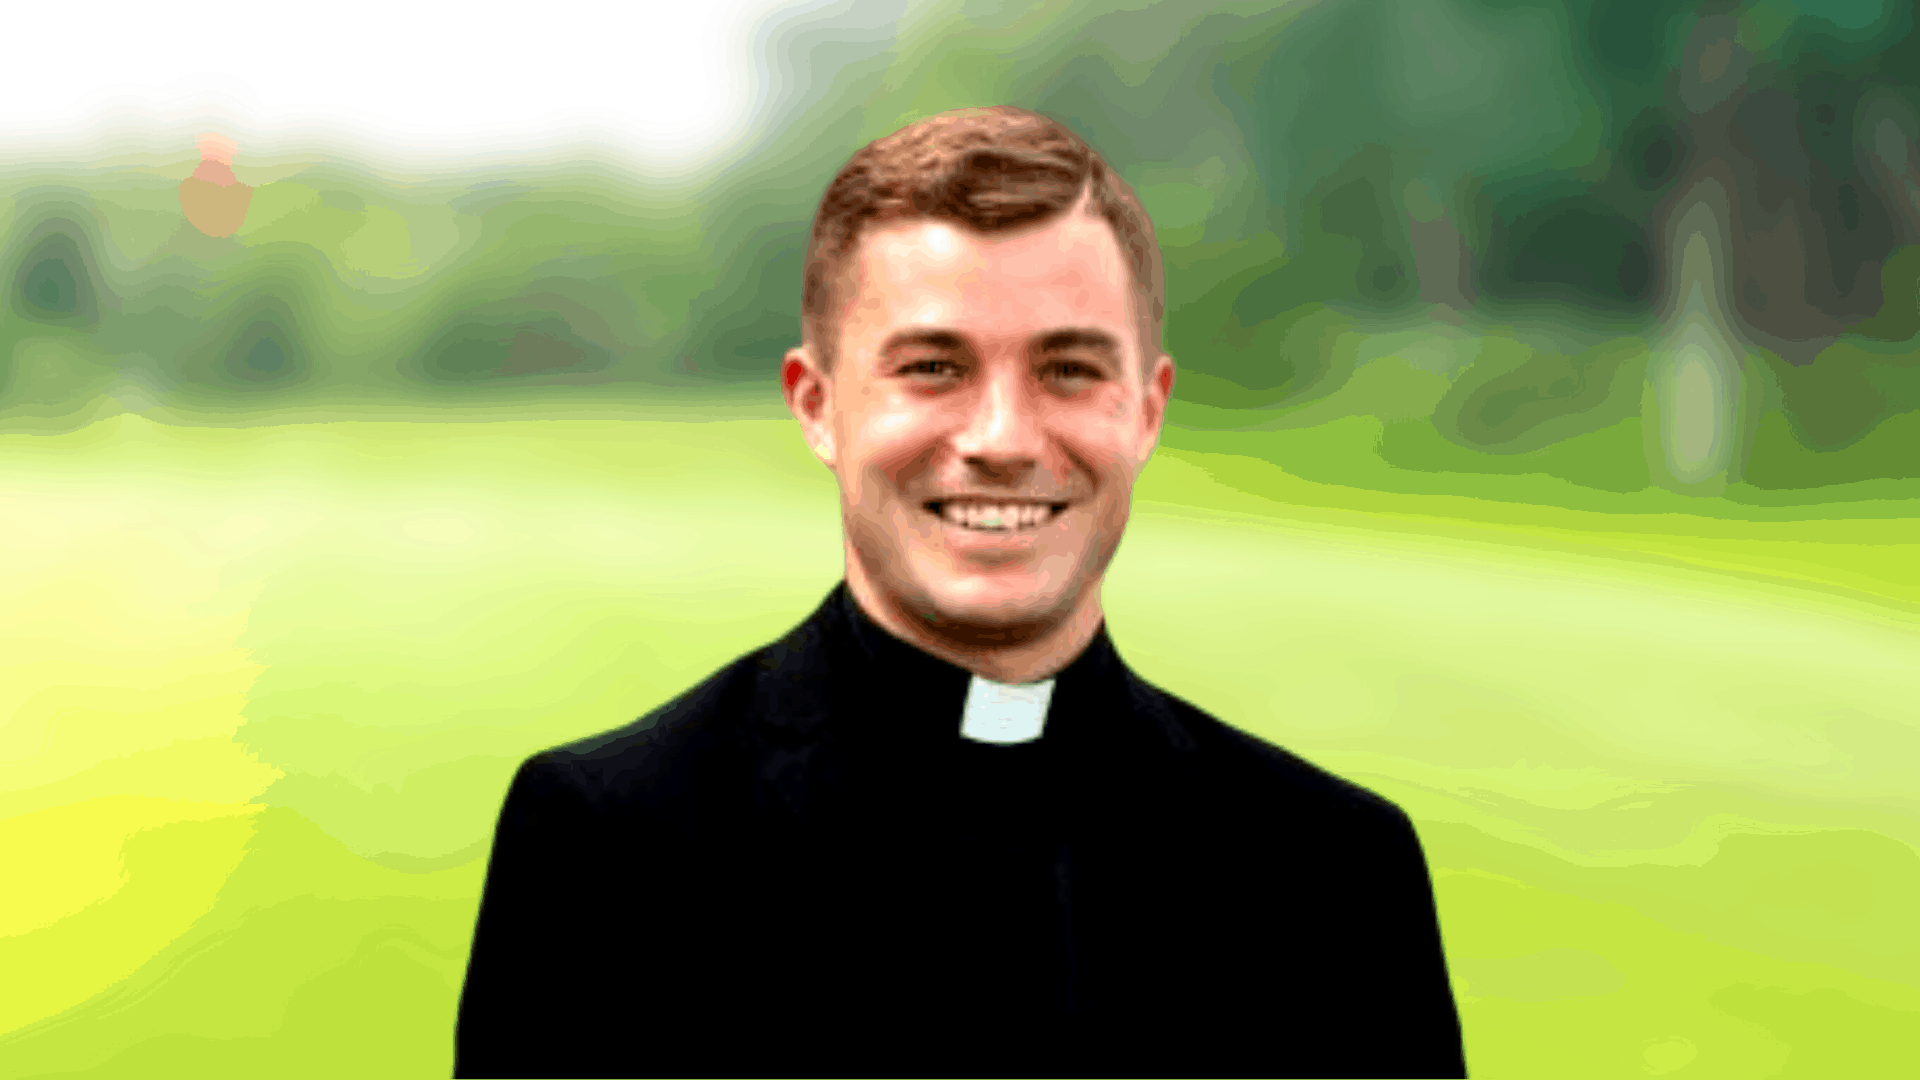 Welcome soon-to-be Fr. Connor Penn!